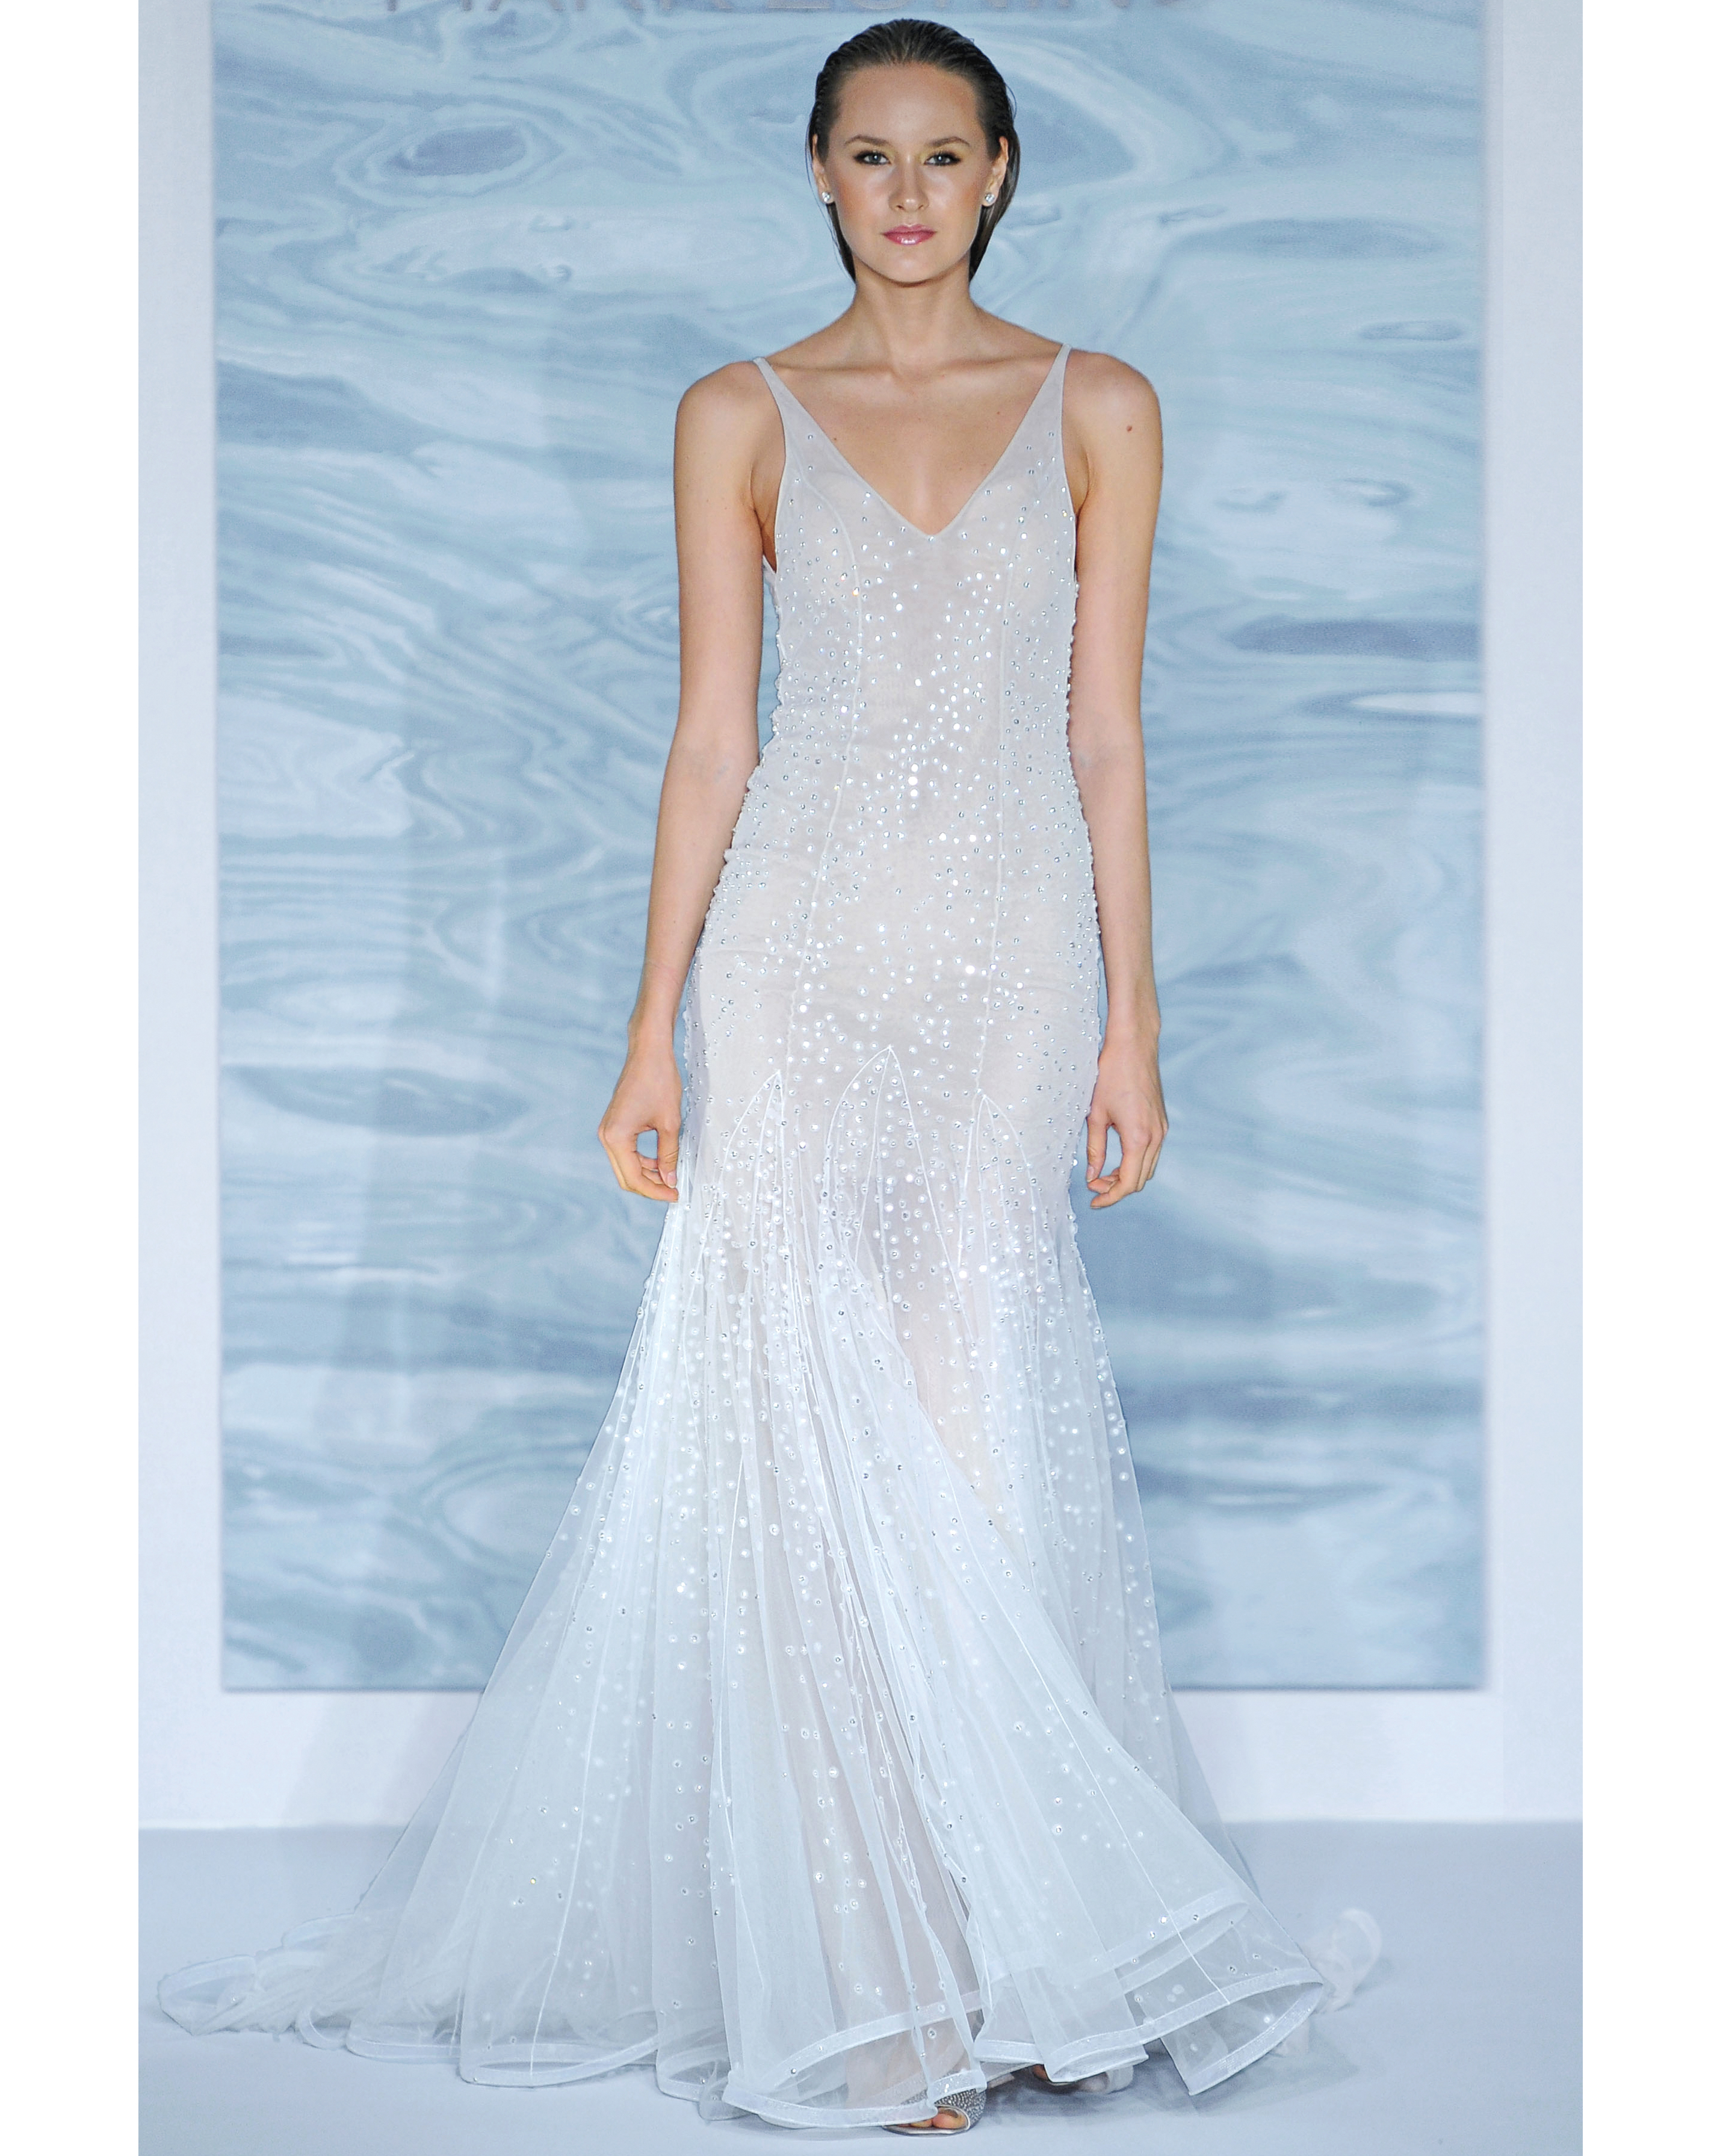 Glam Goddess: Mark Zunino for Kleinfeld Dress